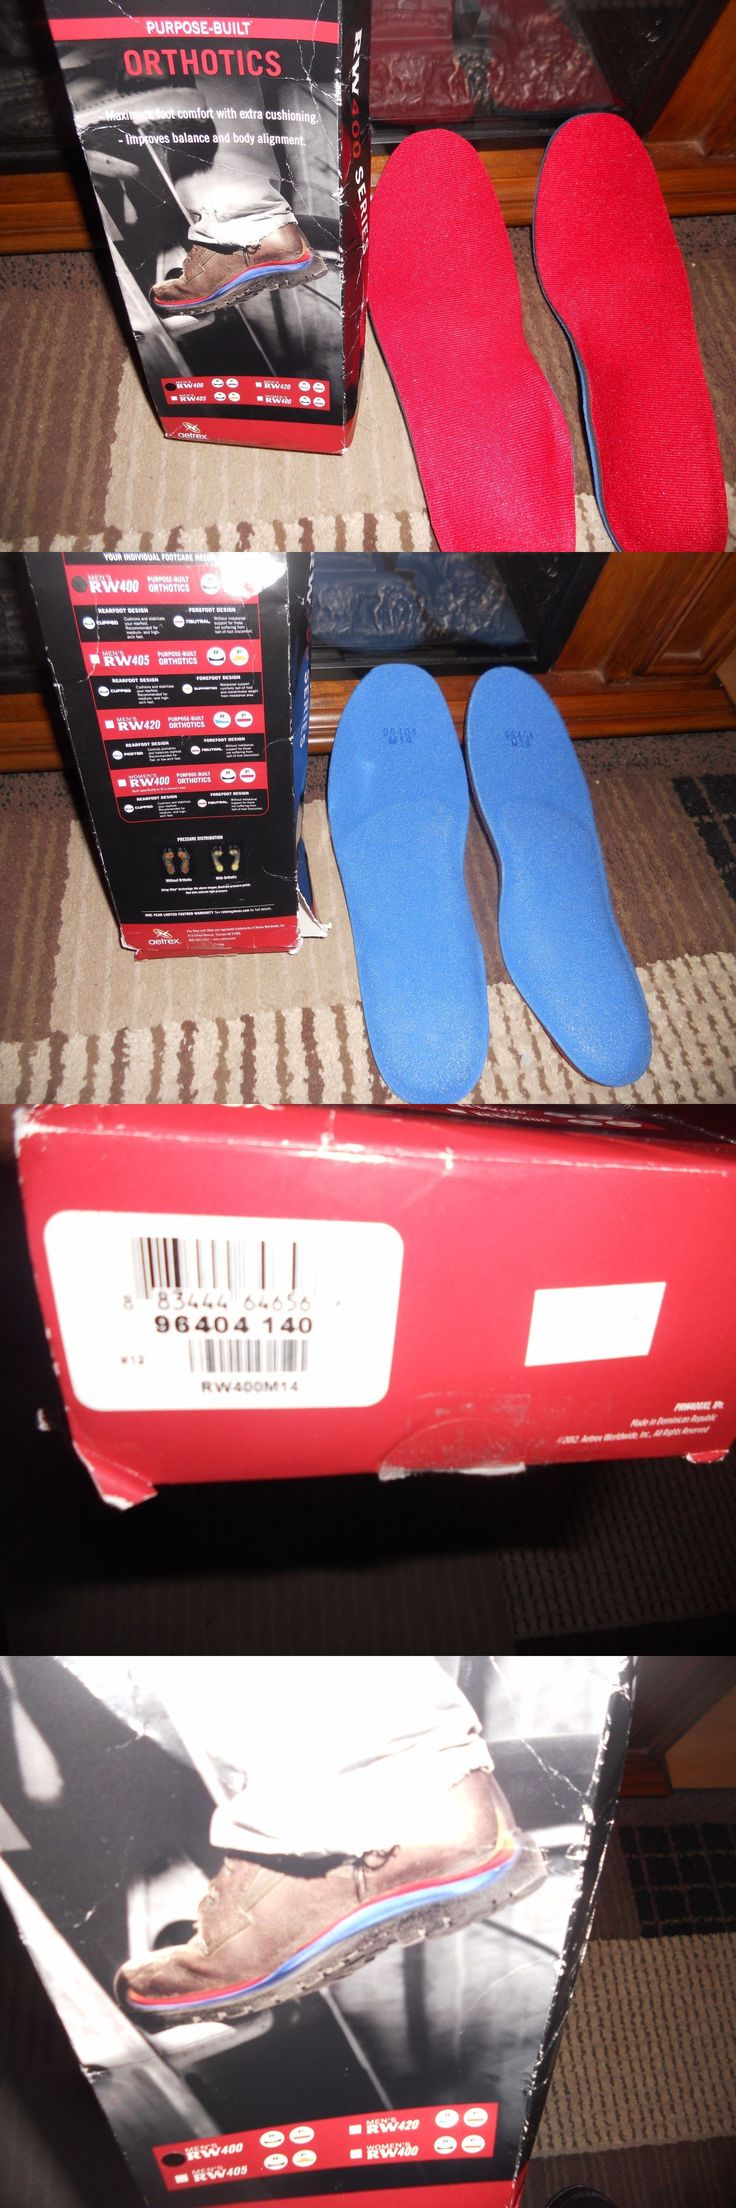 Insoles and Shoe Inserts: Red Wing Shoes Orthotics Insoles Men S Size M14 96404 Rw400 New In Box By Aetrex -> BUY IT NOW ONLY: $34.99 on eBay!